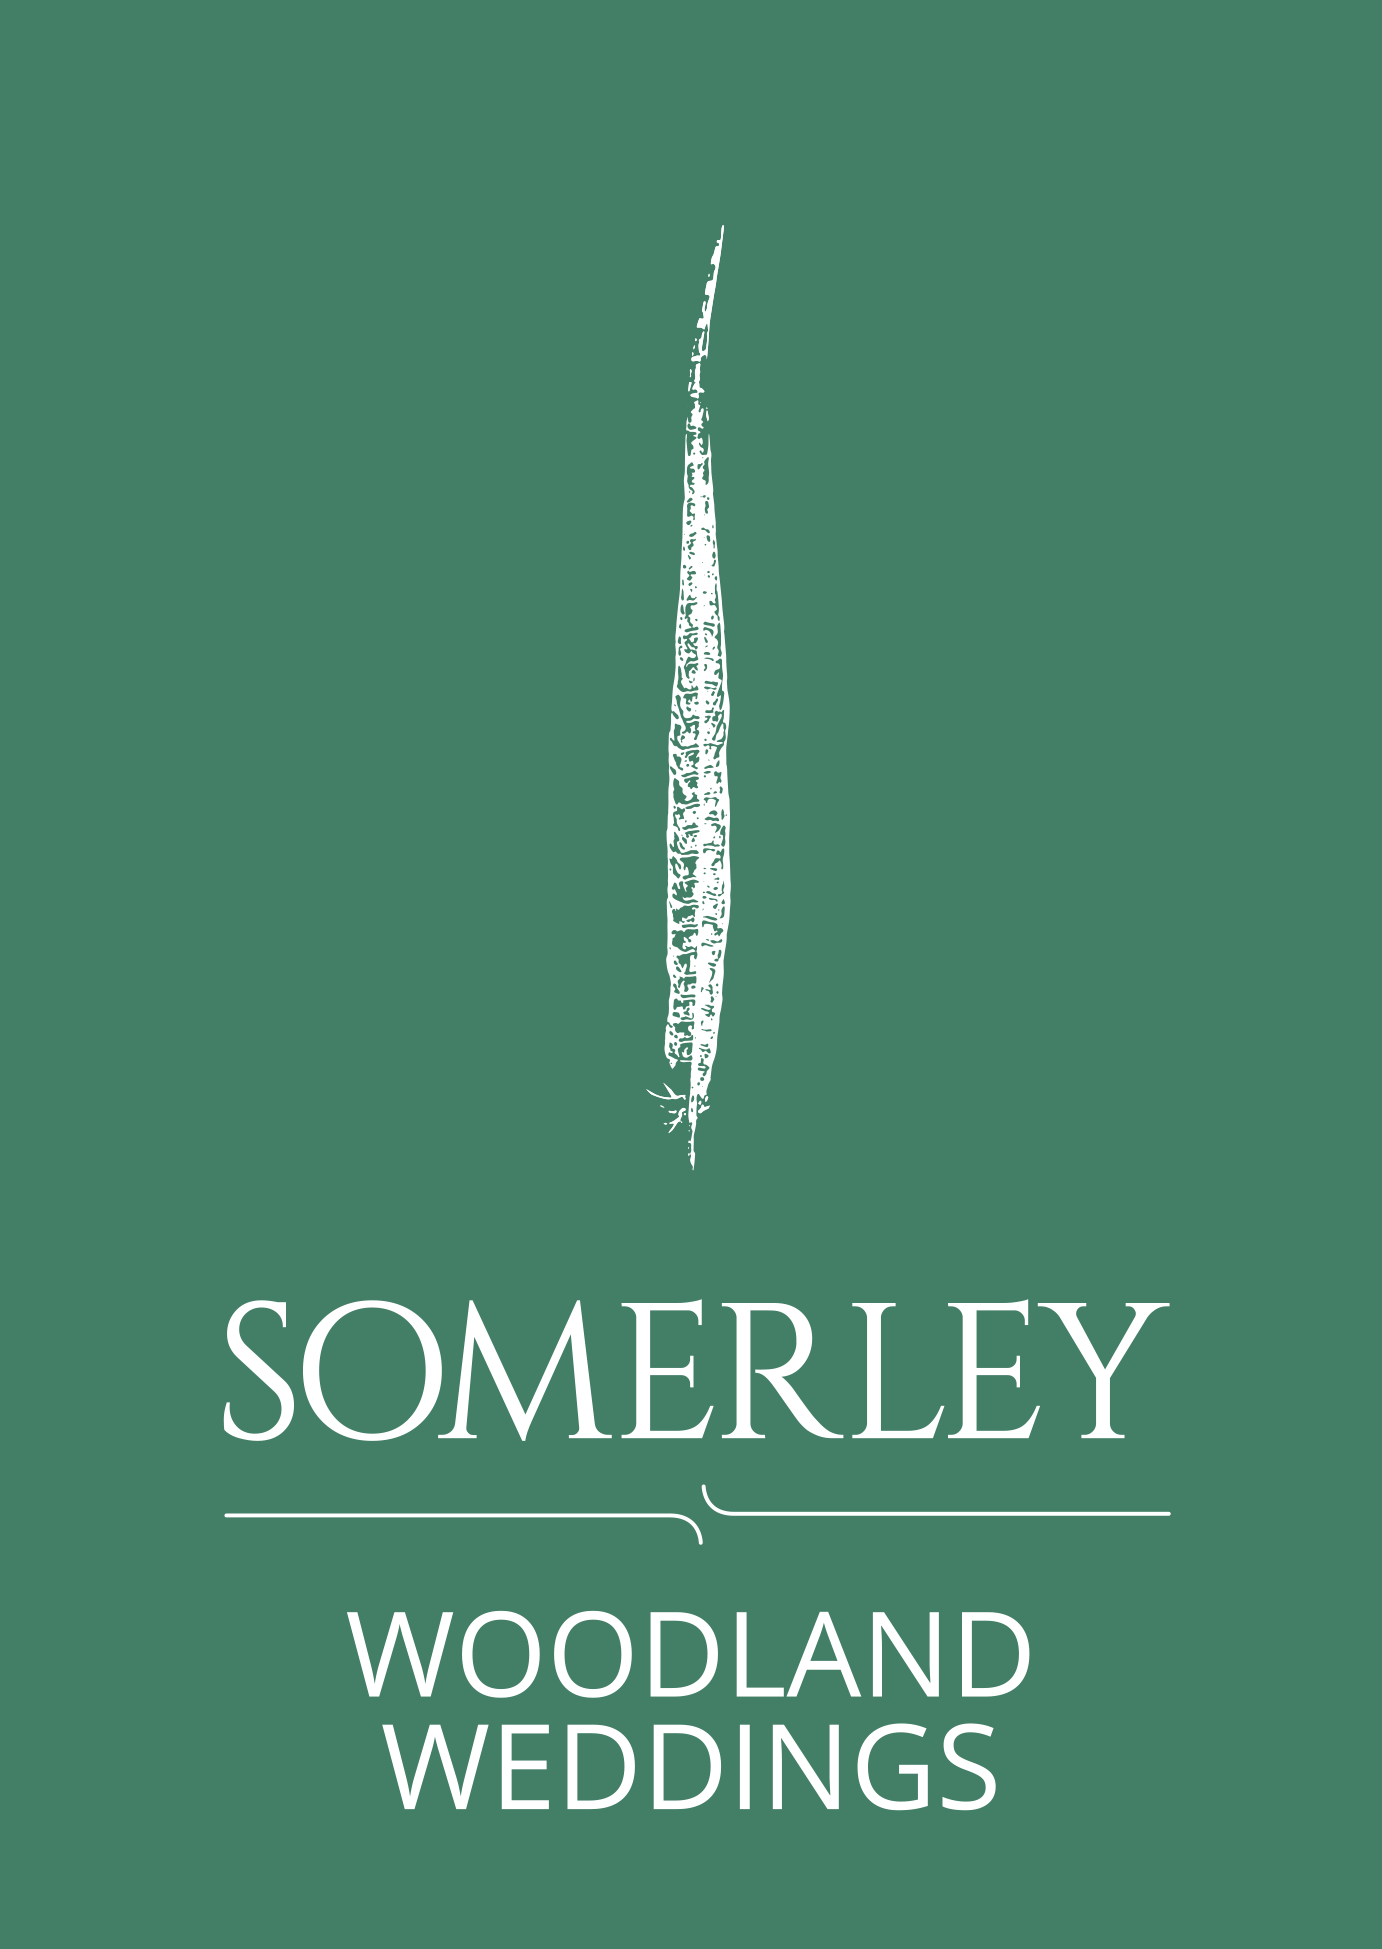 Somerley Woodland Weddings